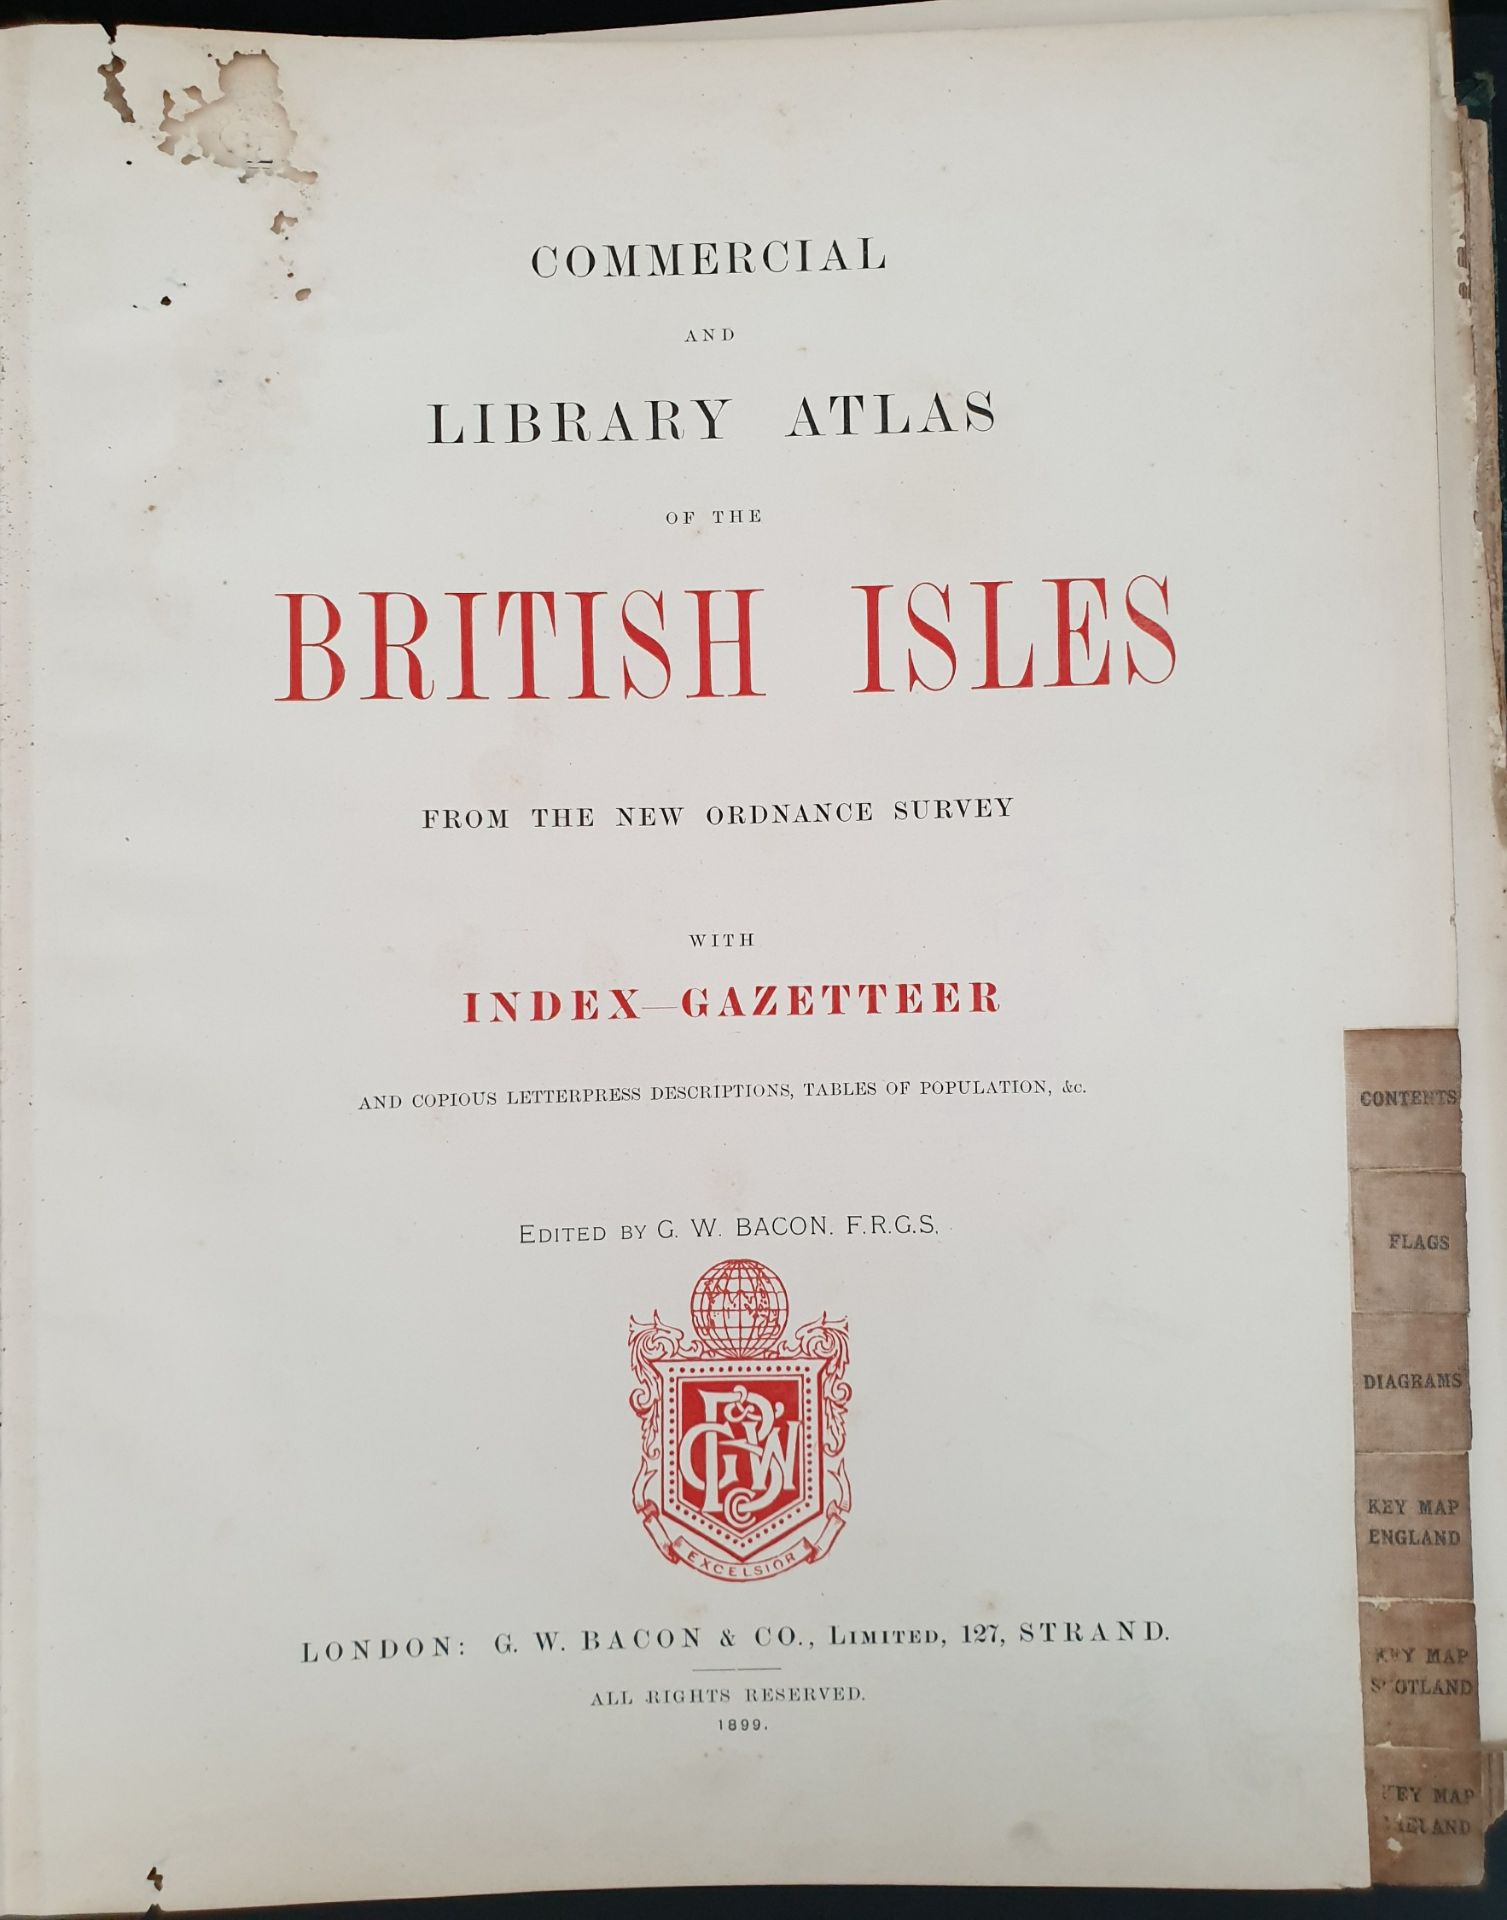 Antiques 1899 Book Atlas Of The British Isles G W Bacon & Co. - Image 5 of 15